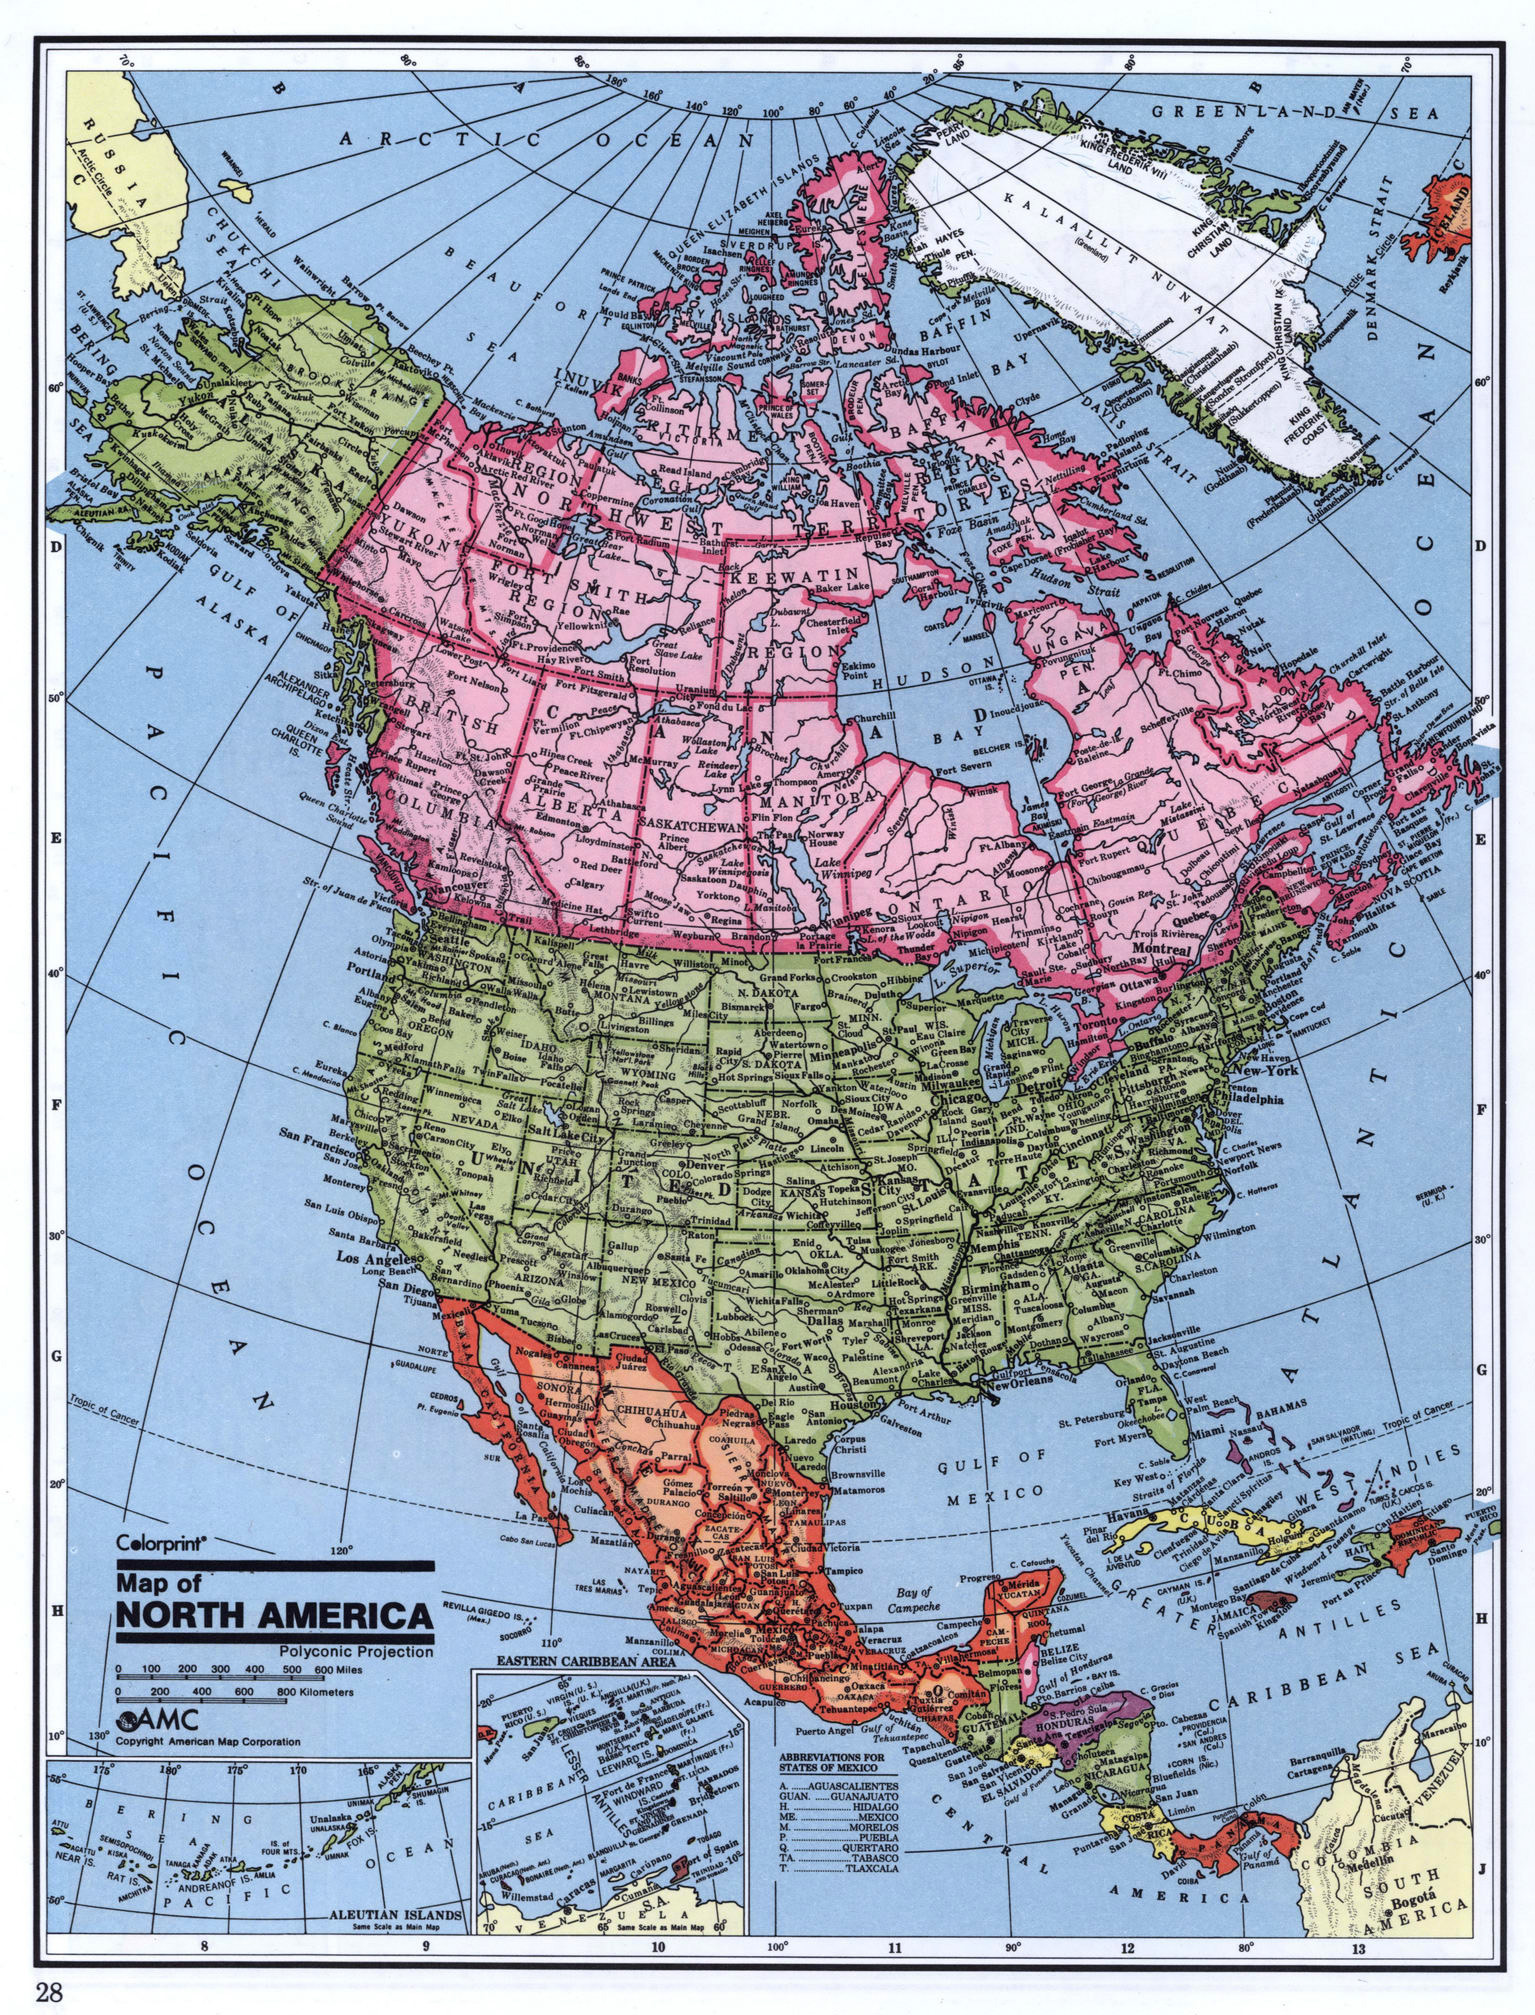 Maps of north america and north american countries political detailed political map of north america gumiabroncs Choice Image